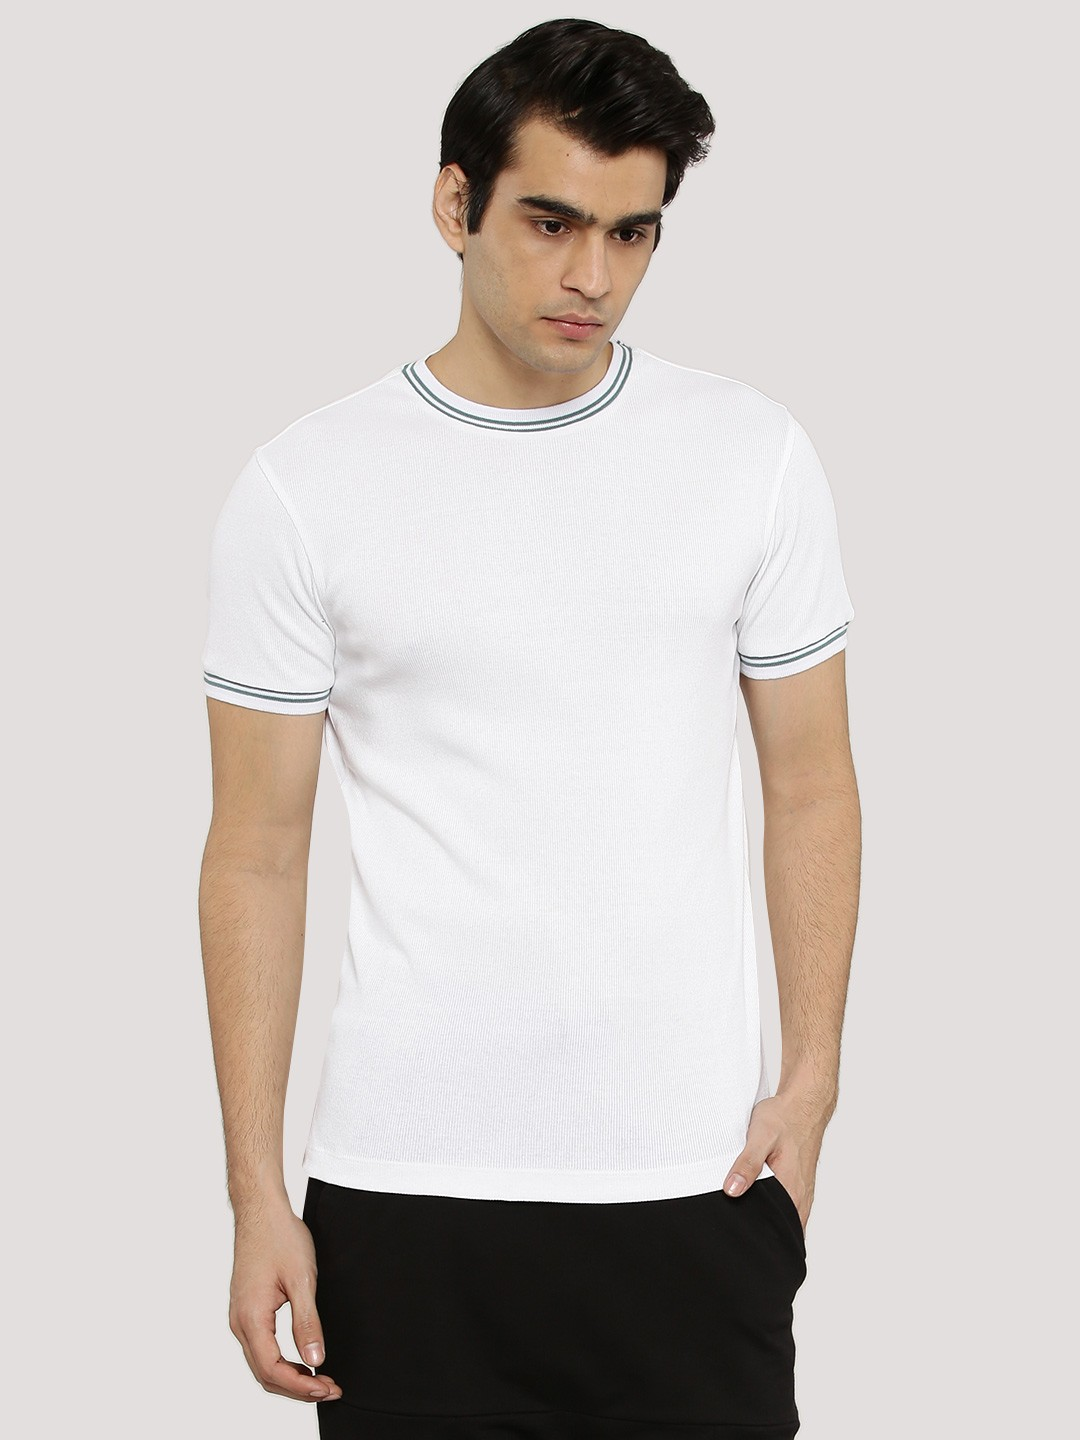 Buy koovs ribbed crew neck t shirt for men men 39 s white t for Mens ribbed t shirts